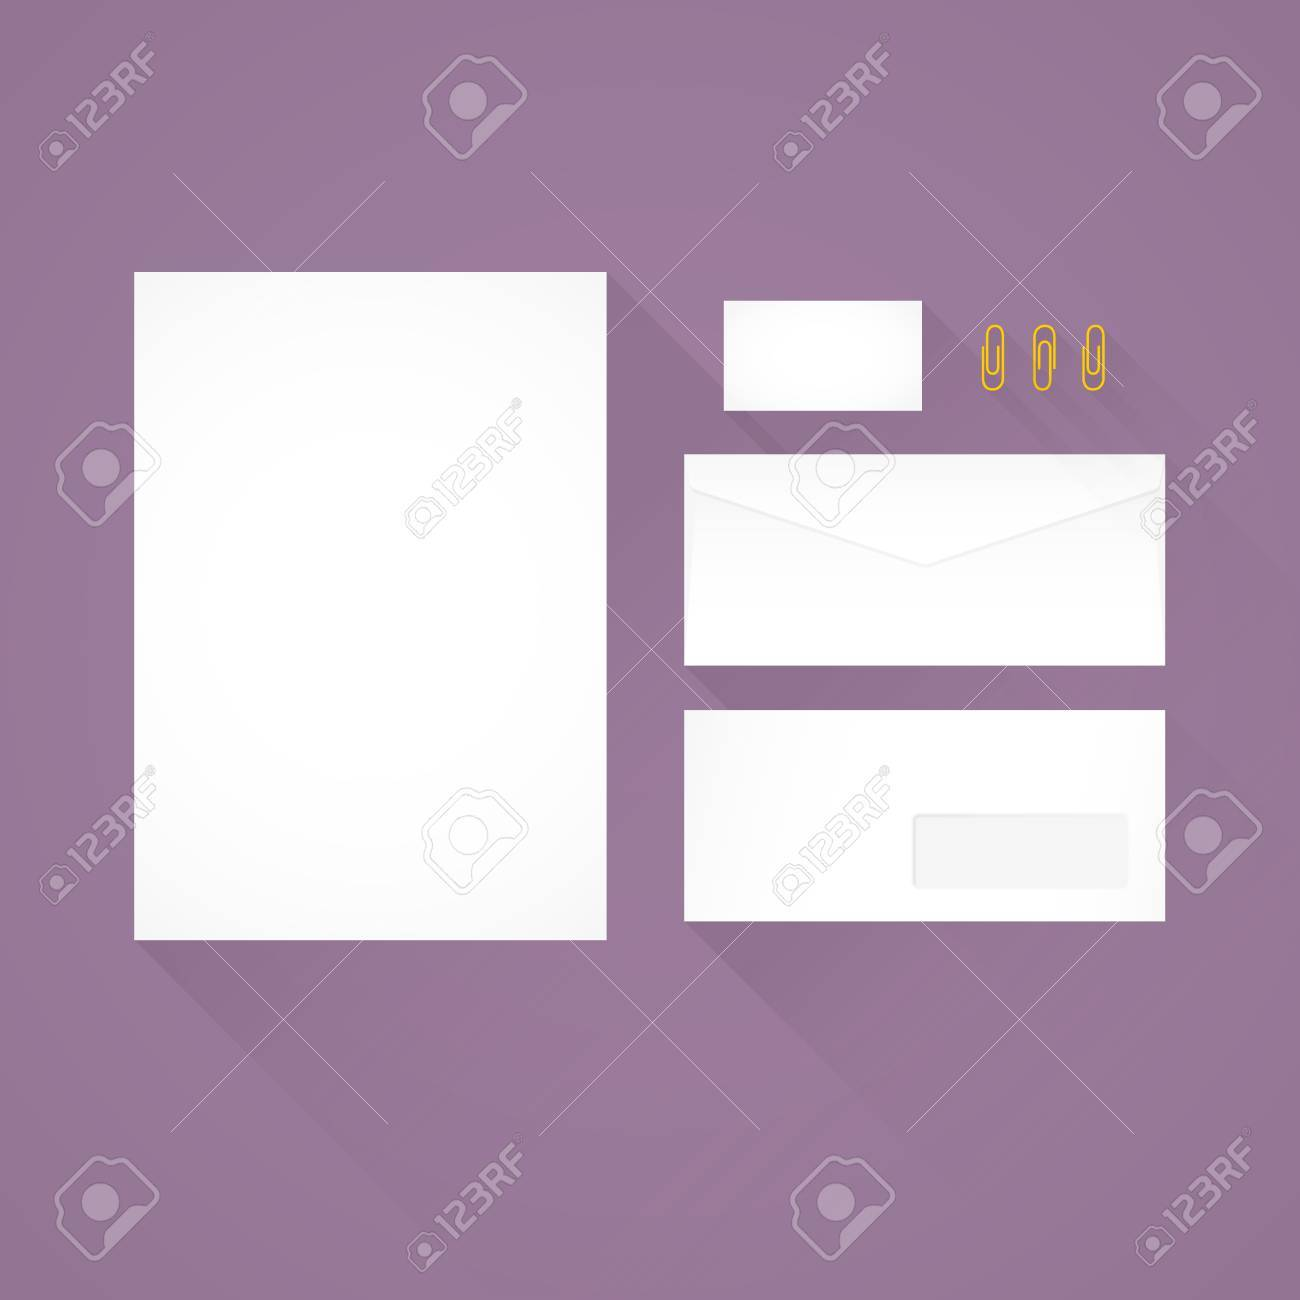 Branding identity template purple background letterhead envelope branding identity template purple background letterhead envelope business card and paperclips friedricerecipe Image collections